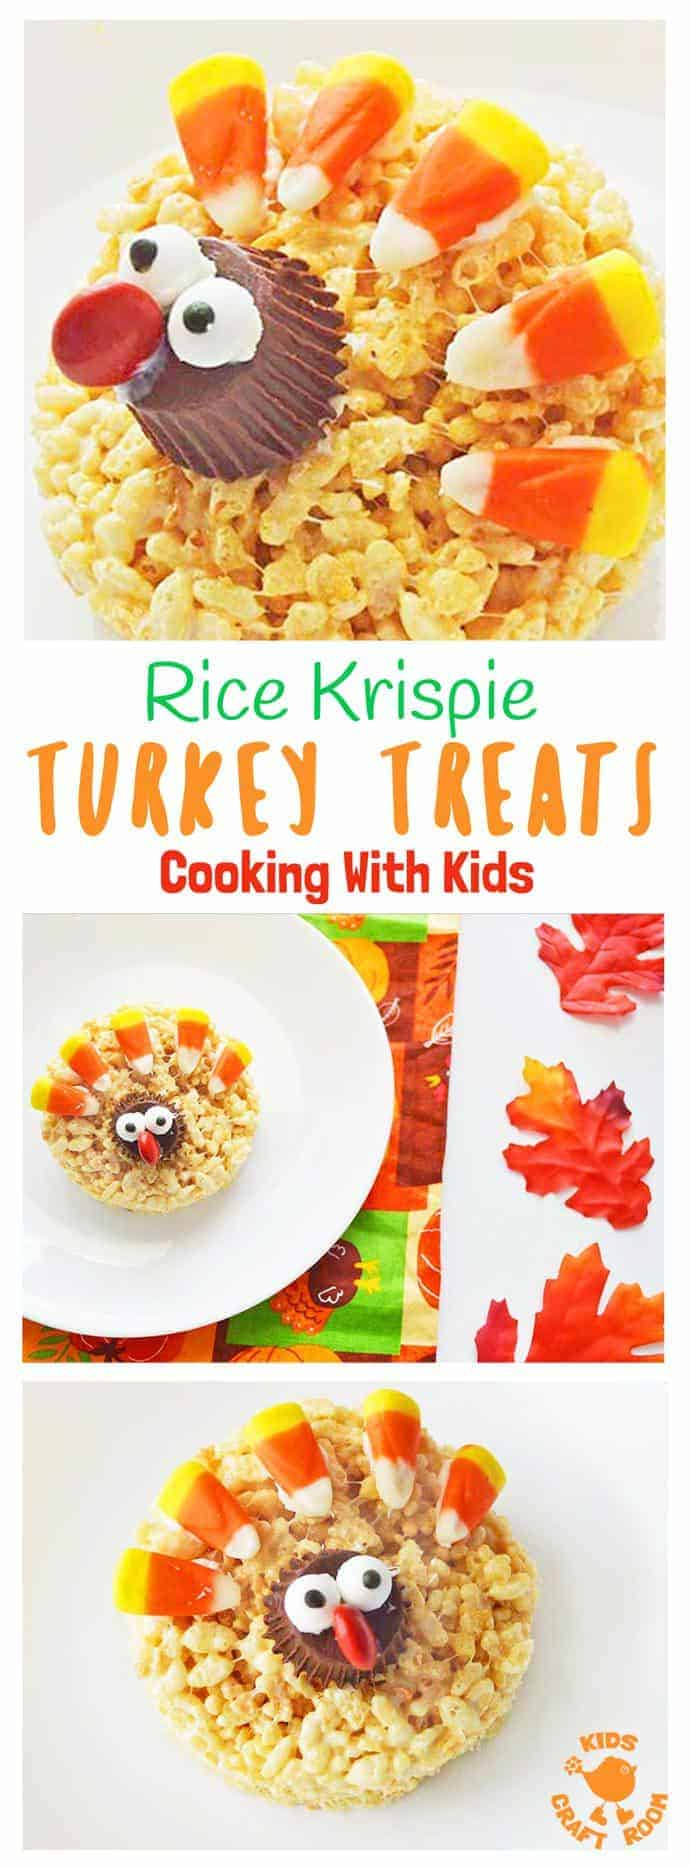 RICE KRISPIE TURKEY TREATS - a simple and fun Thanksgiving recipe that's great for cooking with kids. Easy and delicious this is a Thanksgiving treat the whole family will enjoy.